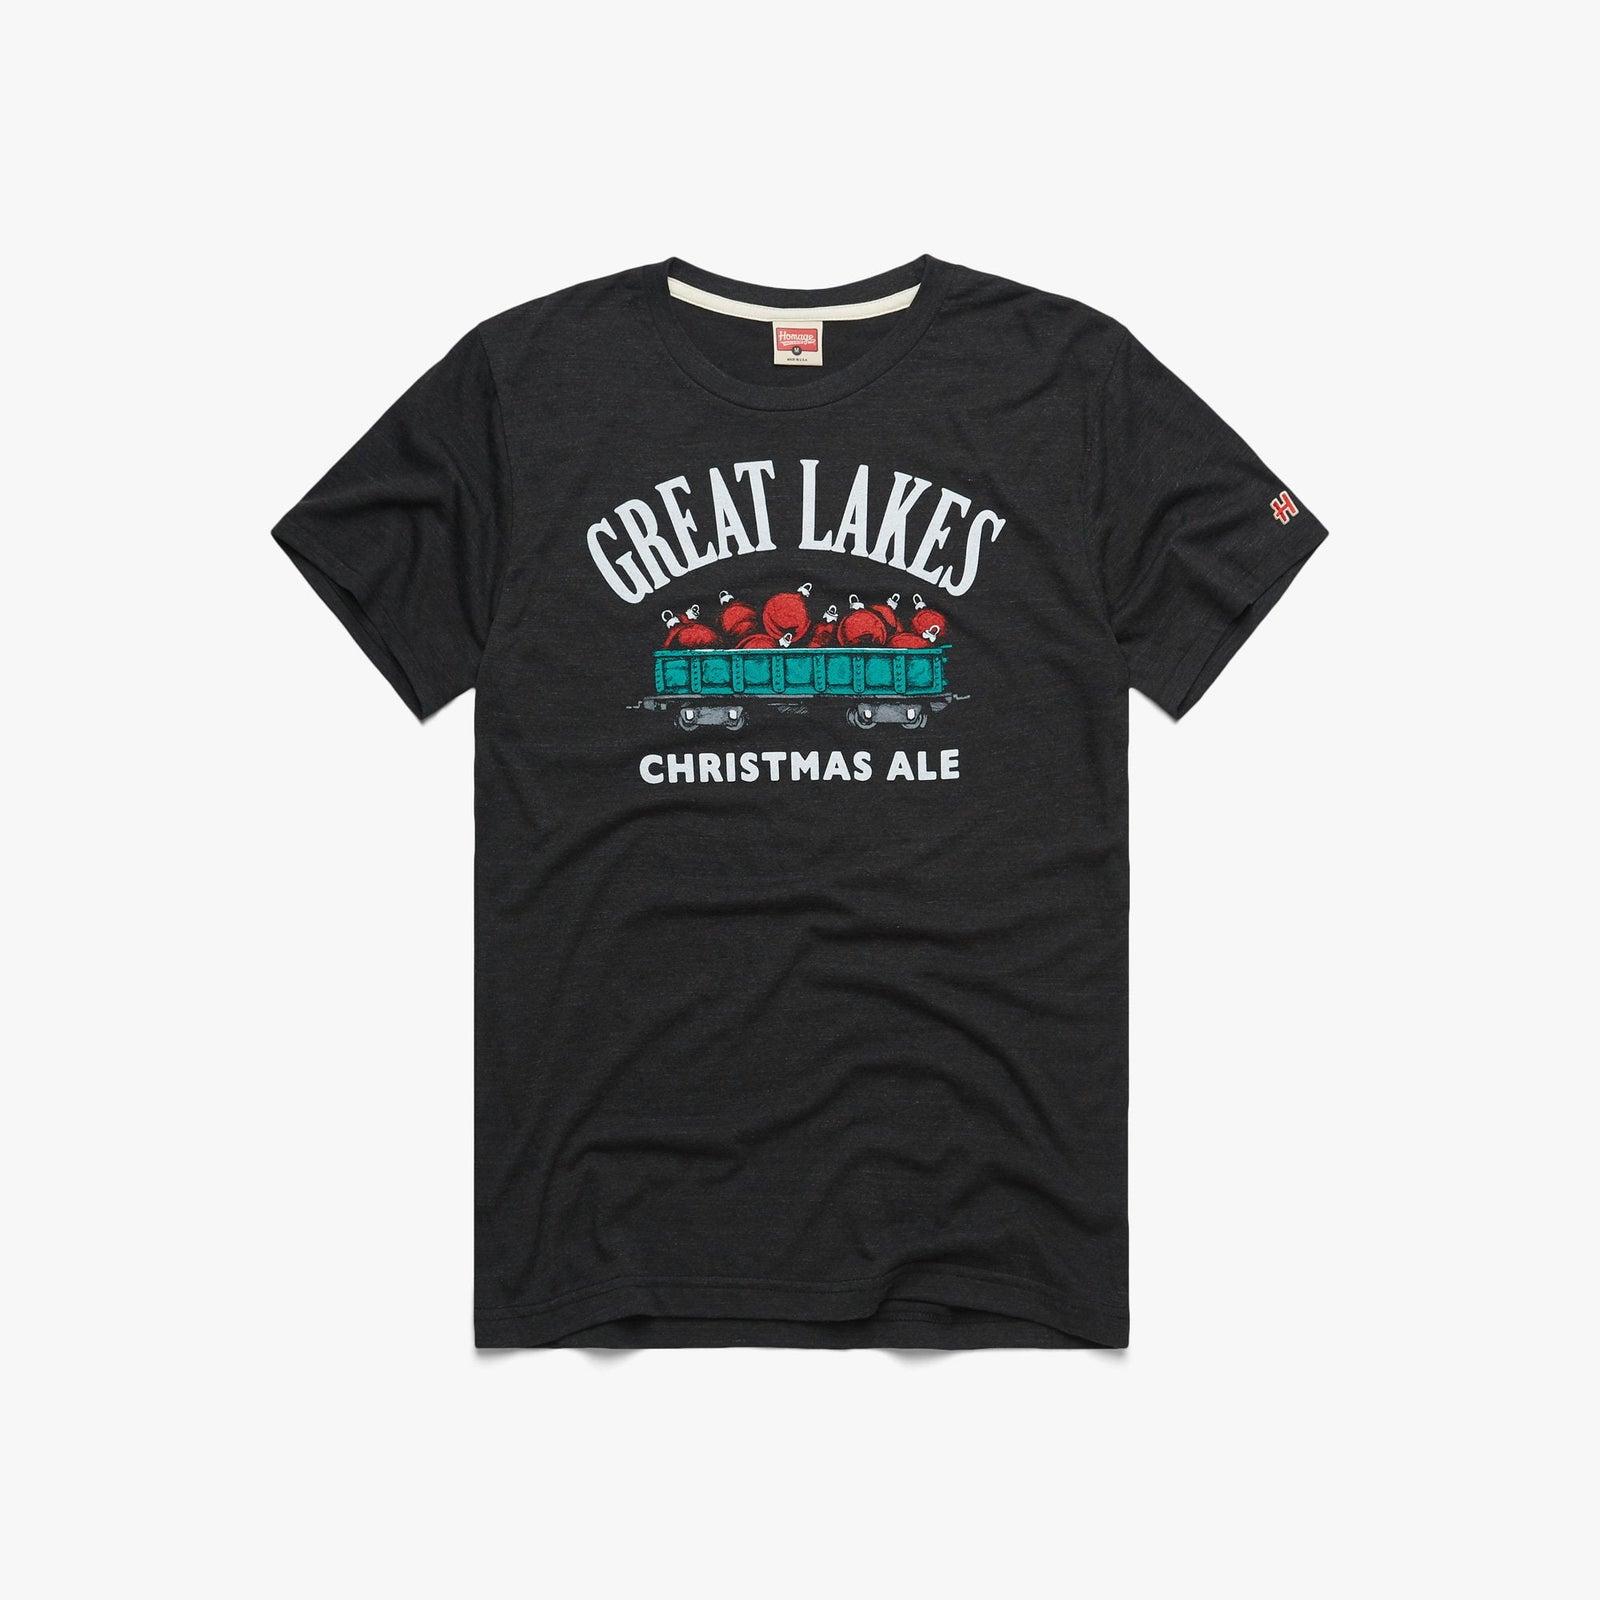 Great Lakes Christmas Ale 2019